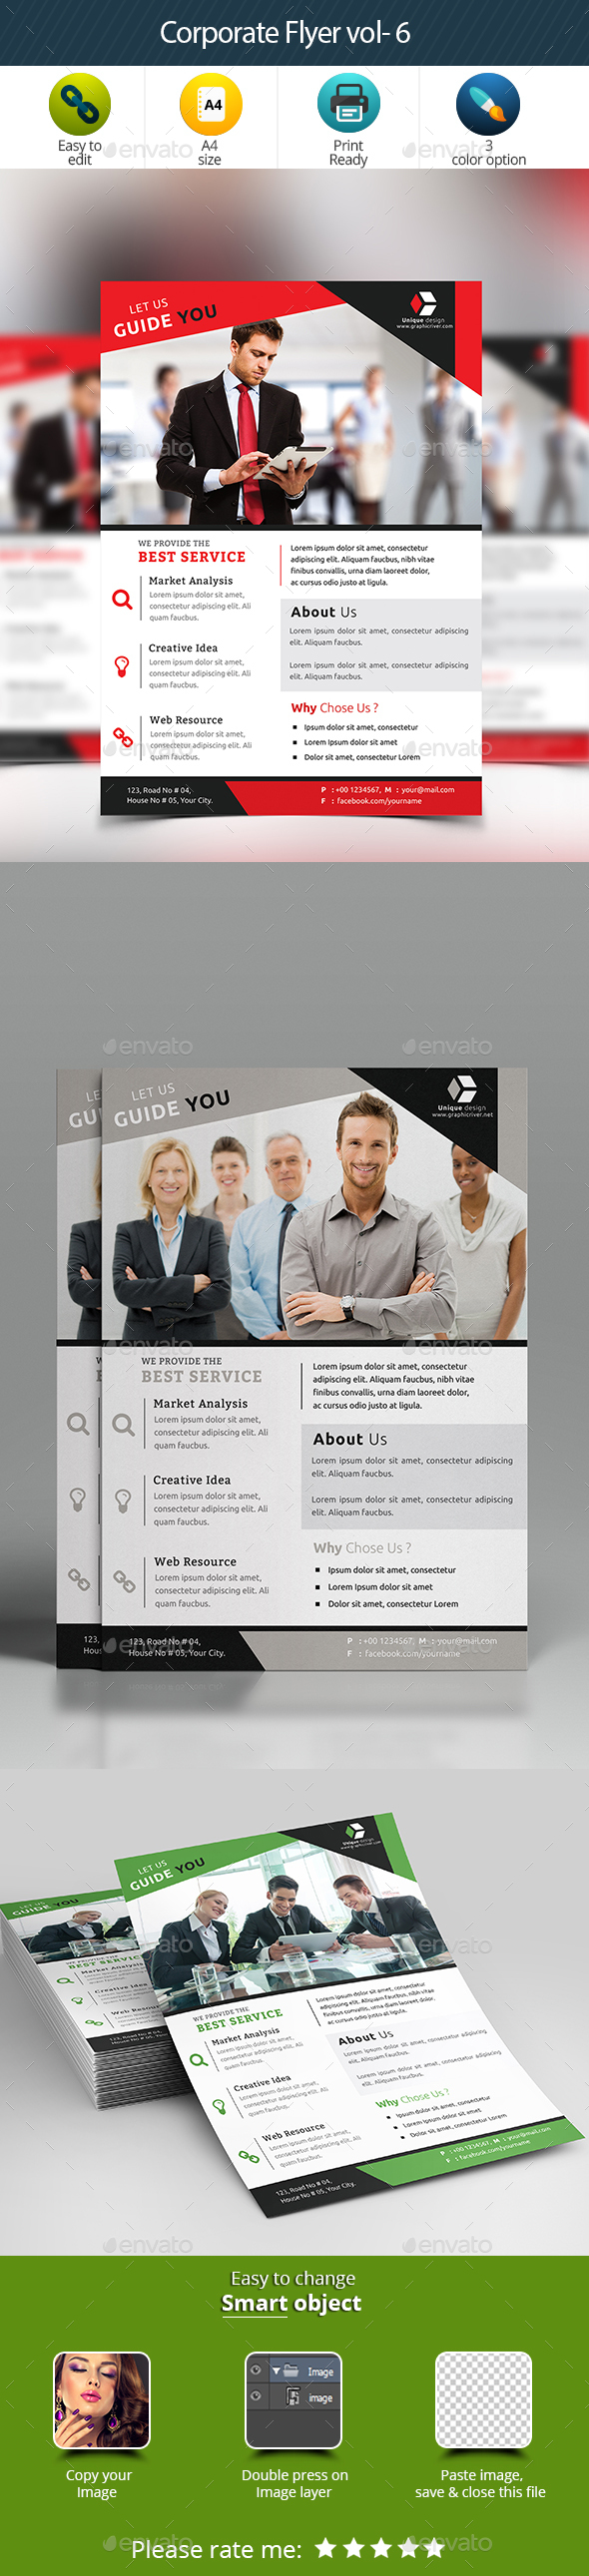 Corporate Flyer Vol- 6 - Corporate Flyers